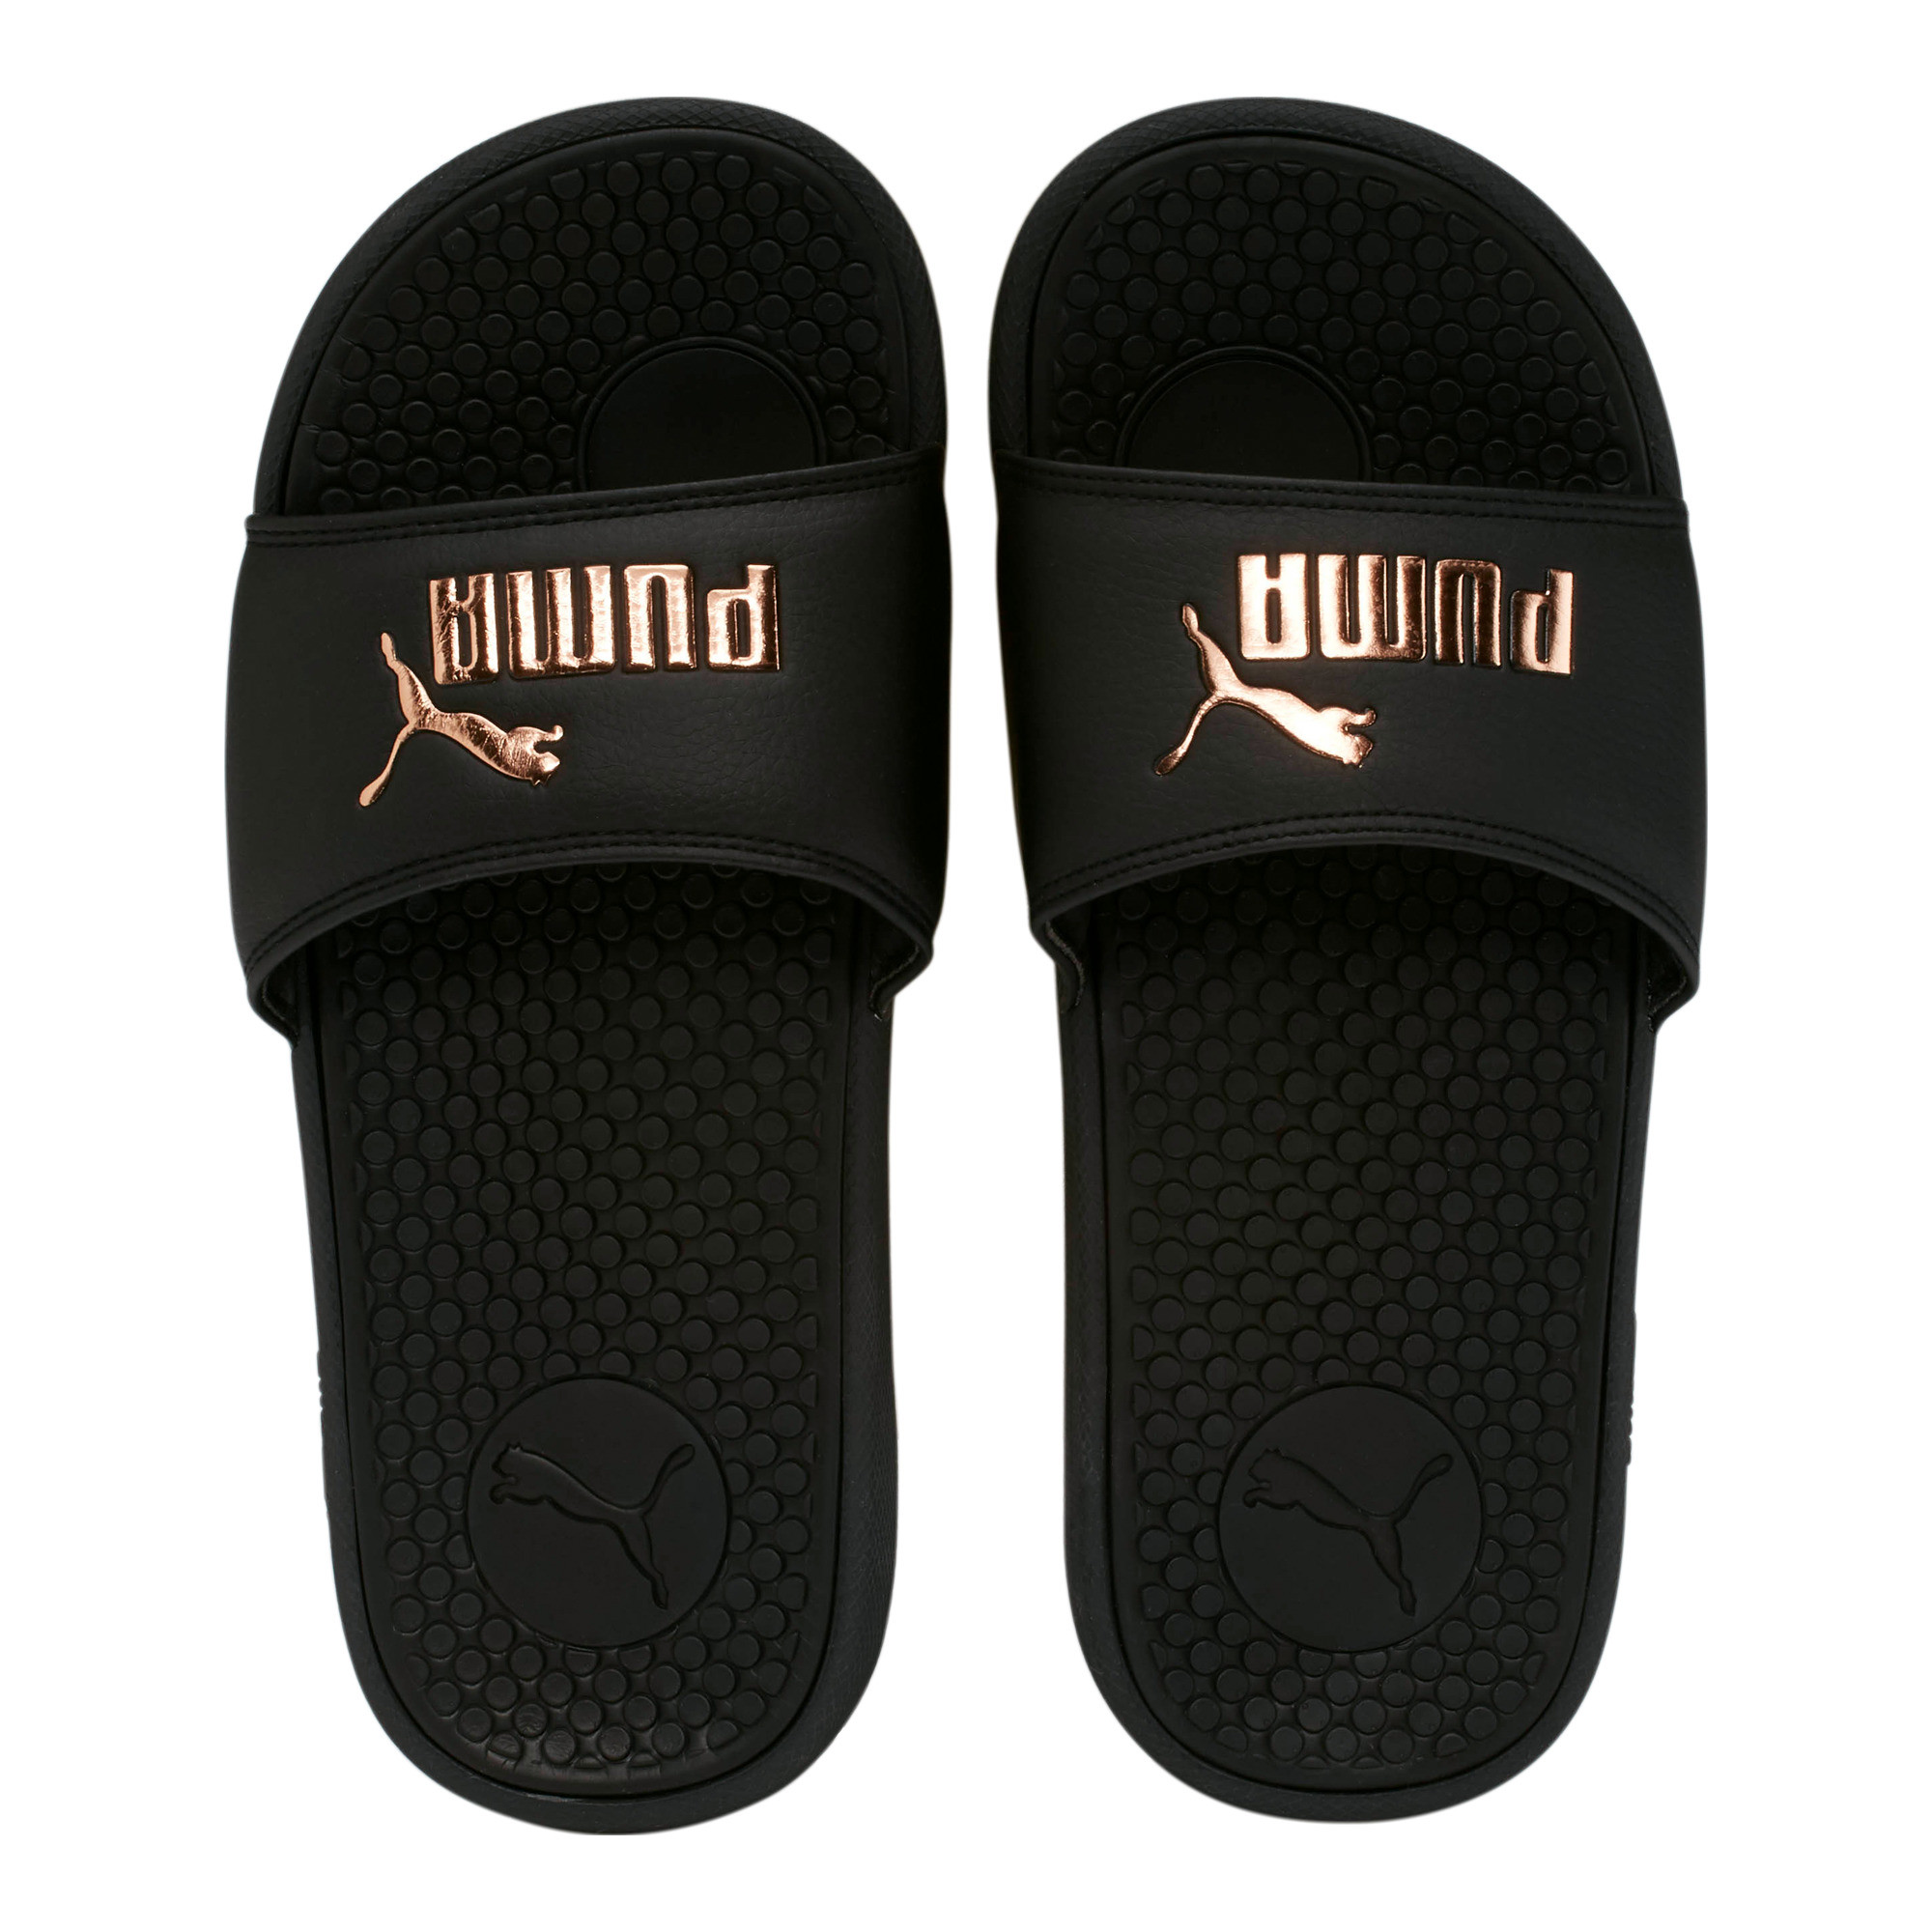 PUMA-Women-039-s-Cool-Cat-Slides thumbnail 7